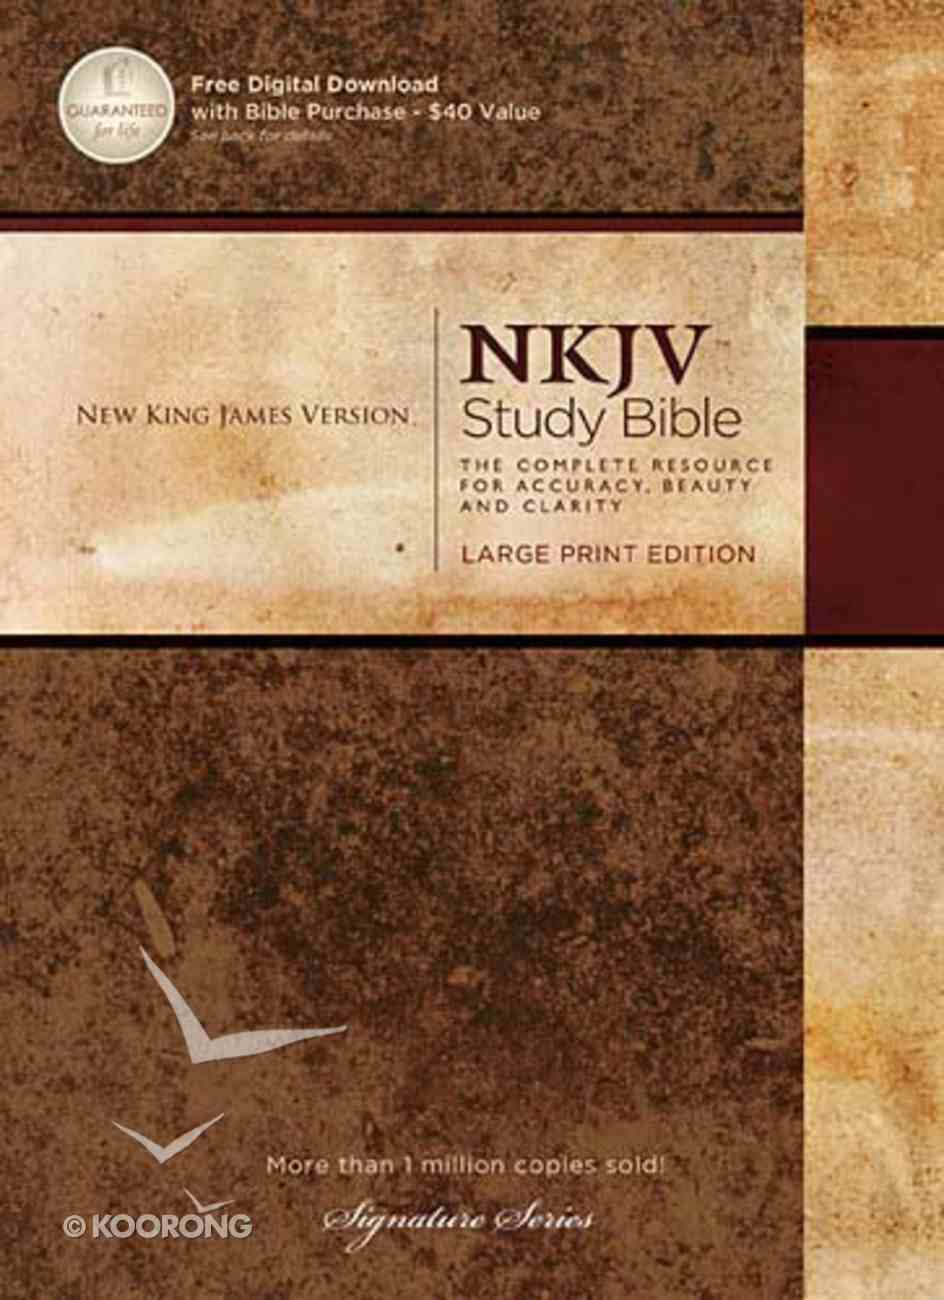 NKJV Study Bible Large Print (Black Letter Edition) Hardback